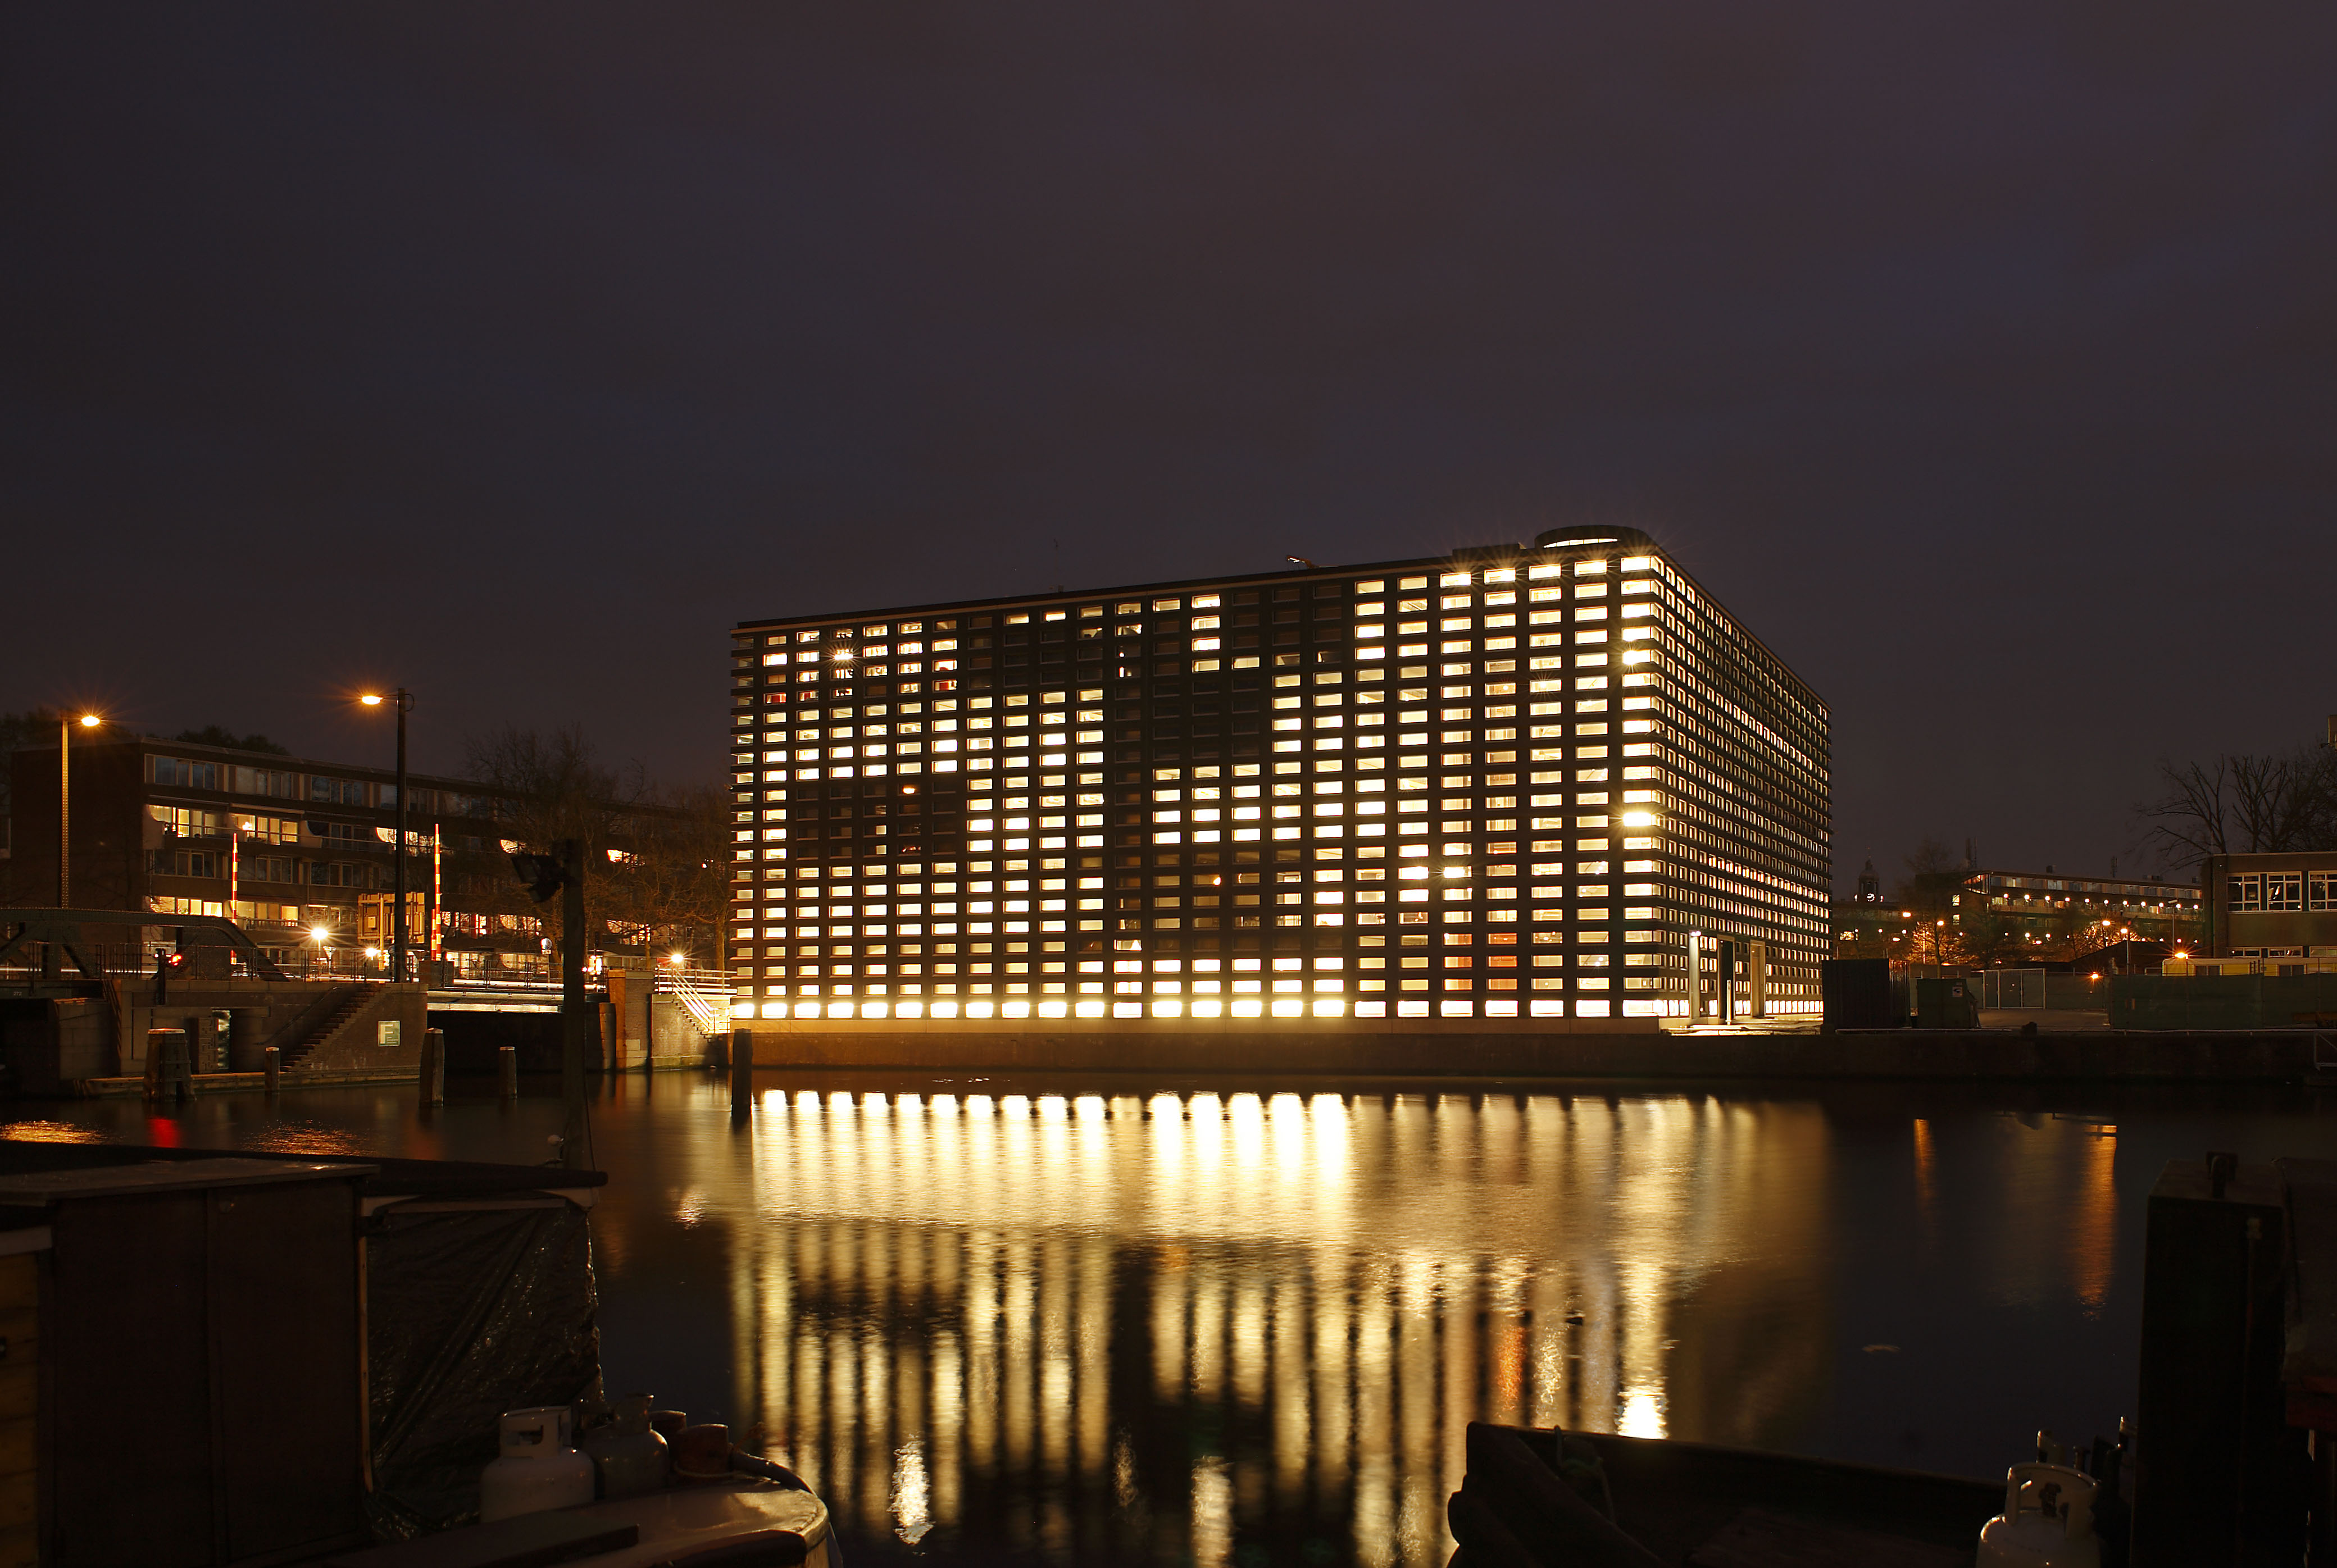 Mare Chaussee - Amsterdam